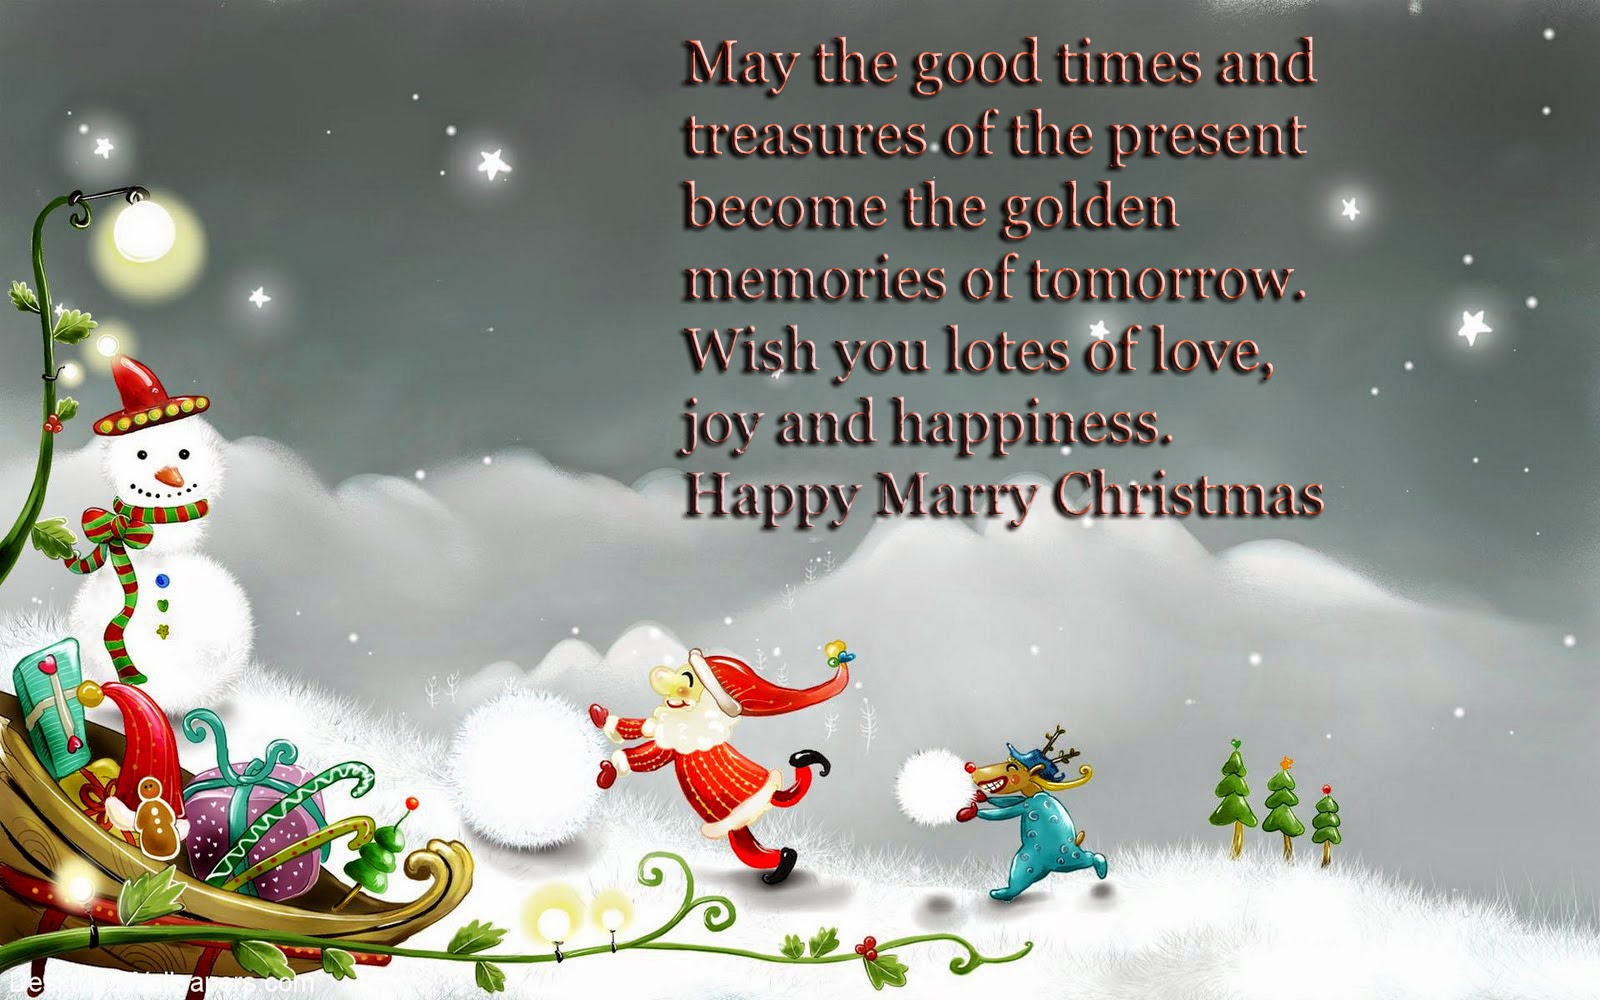 Merry Christmas 2014 greetings message SMS, Wishes, Quotes ~ World ...